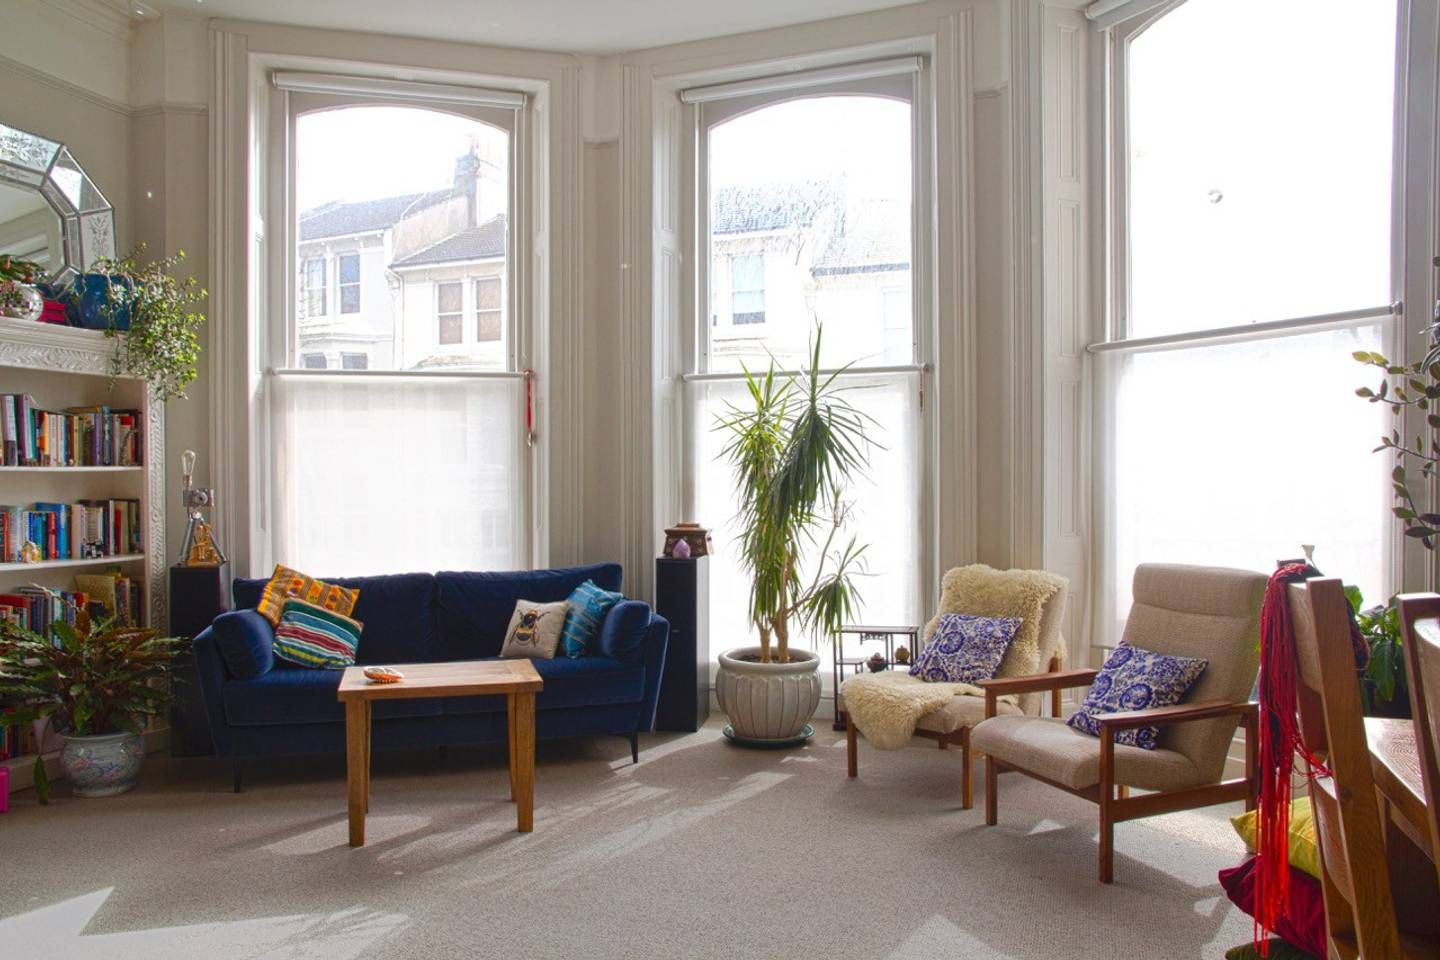 Eclectic Brighton Seaside Escape - Apartments for Rent in ... on Kingdom Outdoor Living id=41210